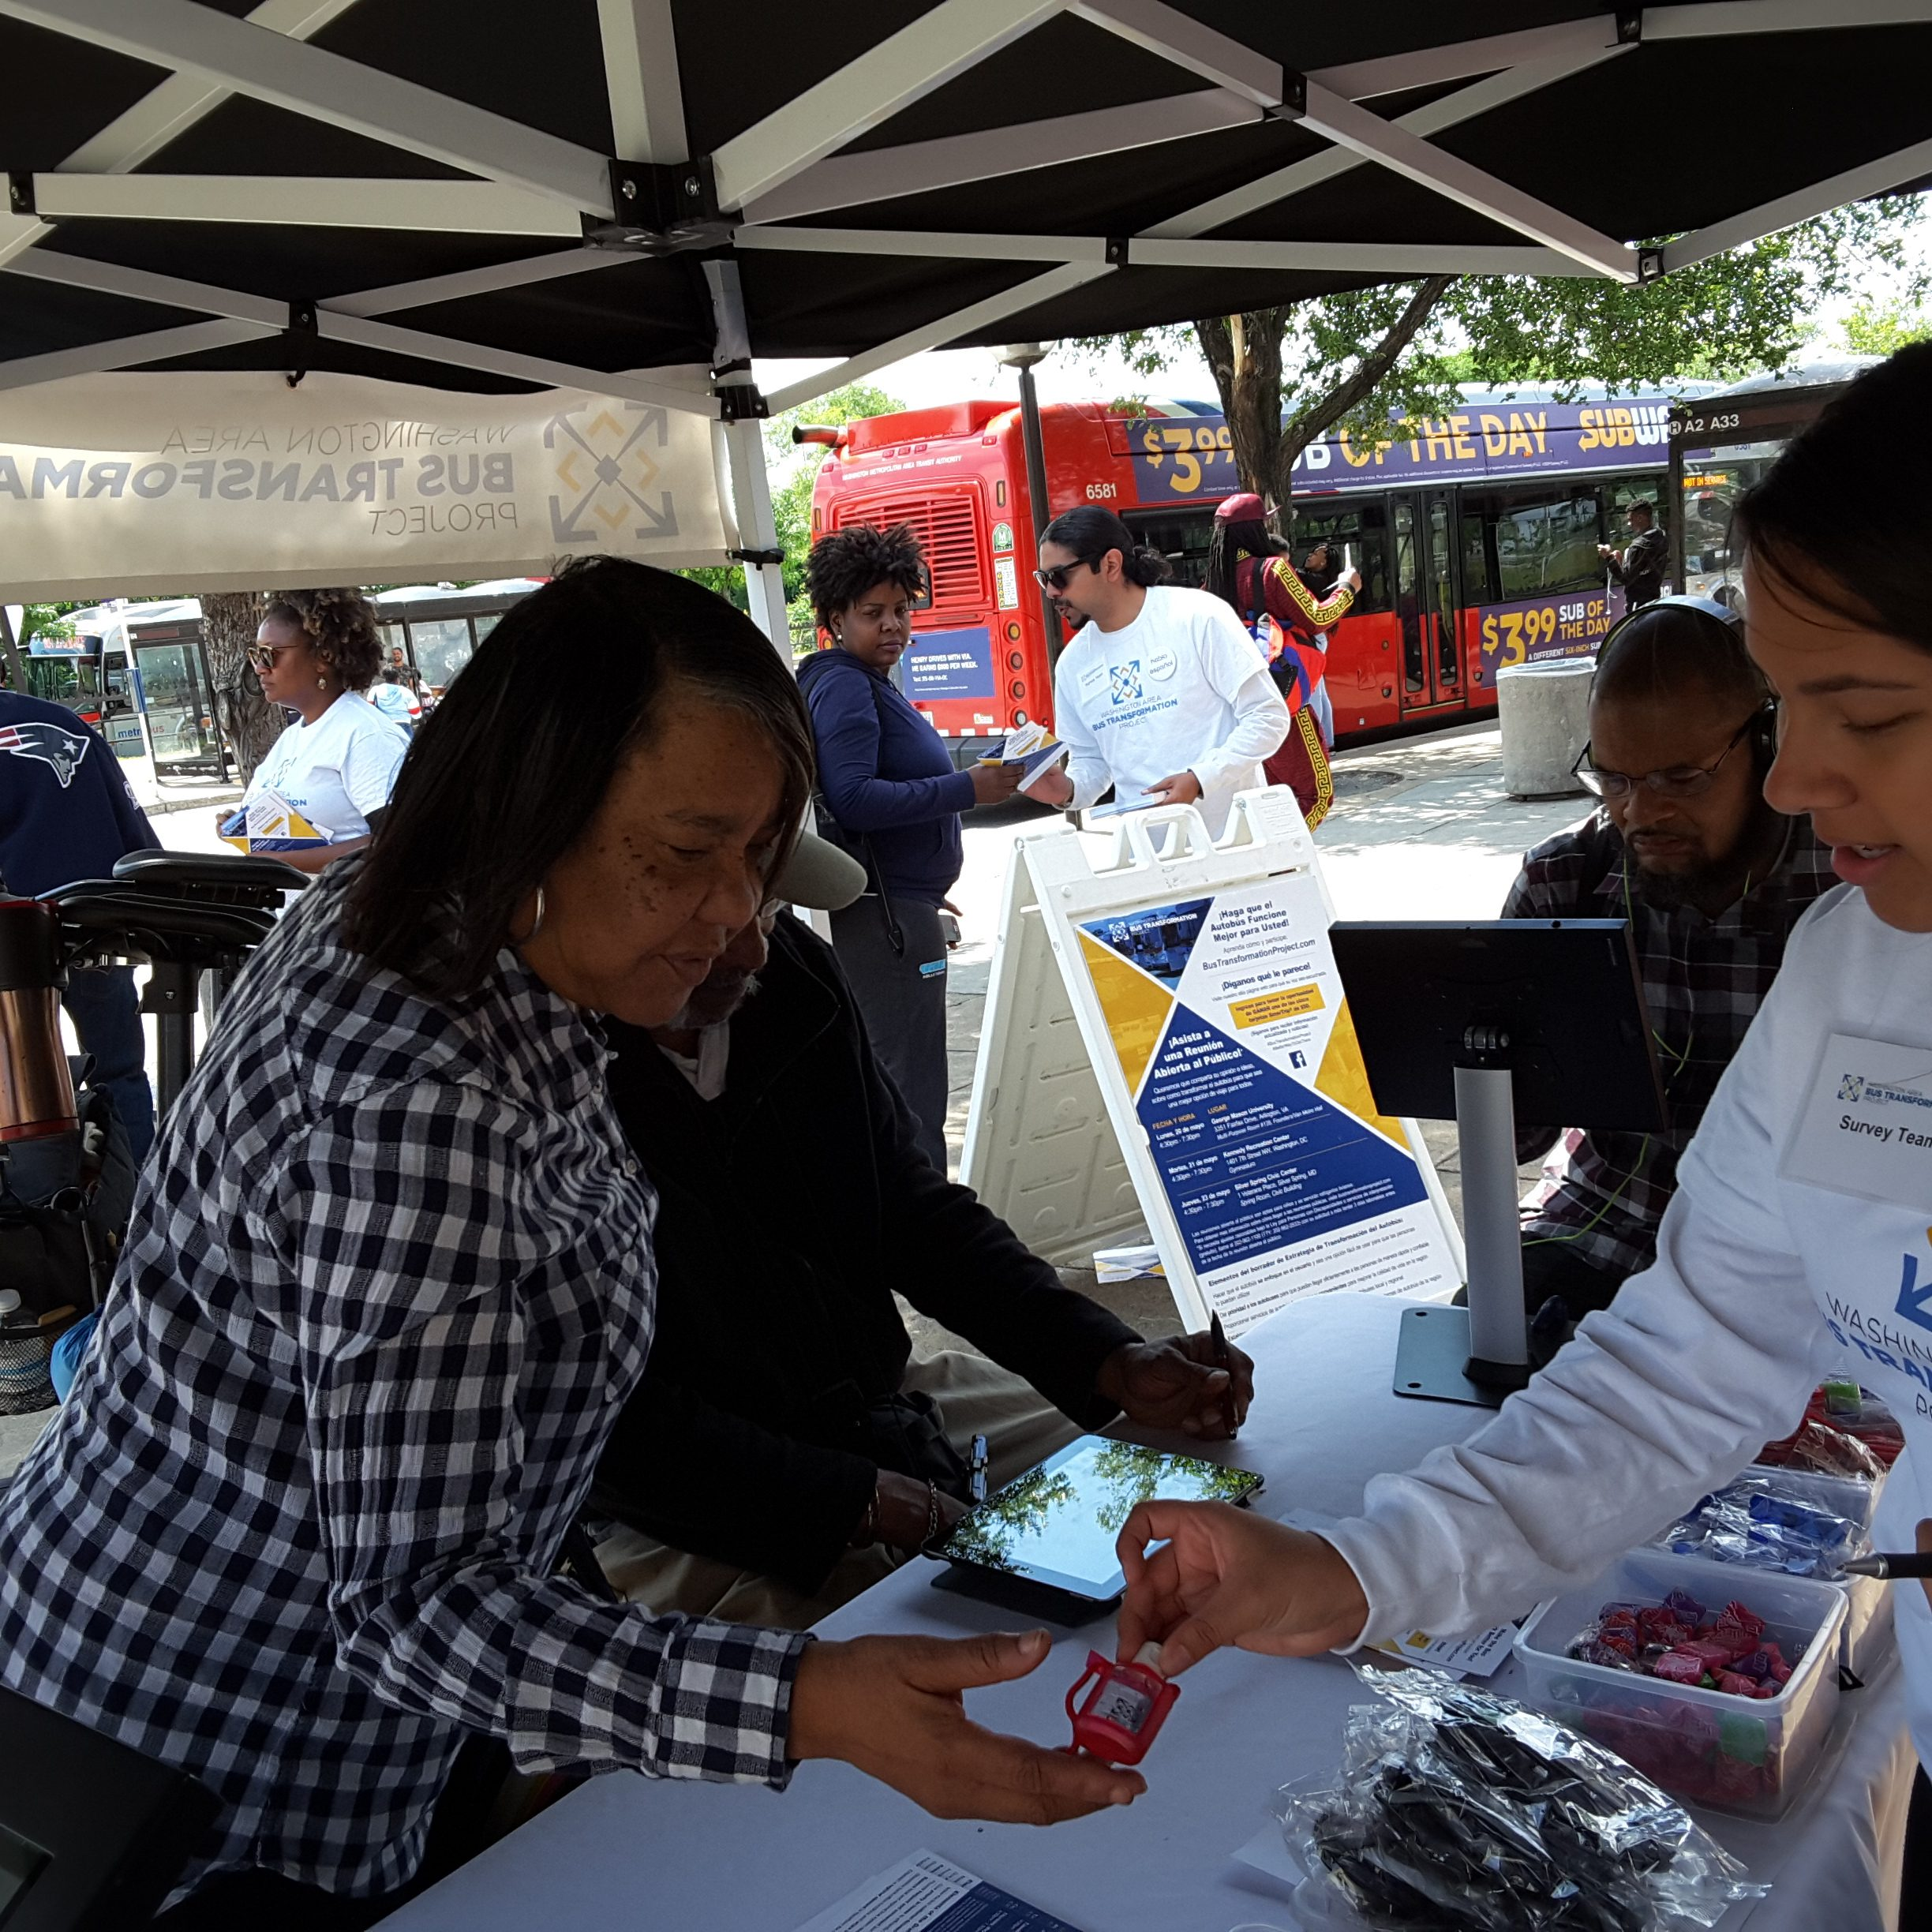 Event booth with people at the Anacostia Metro Station